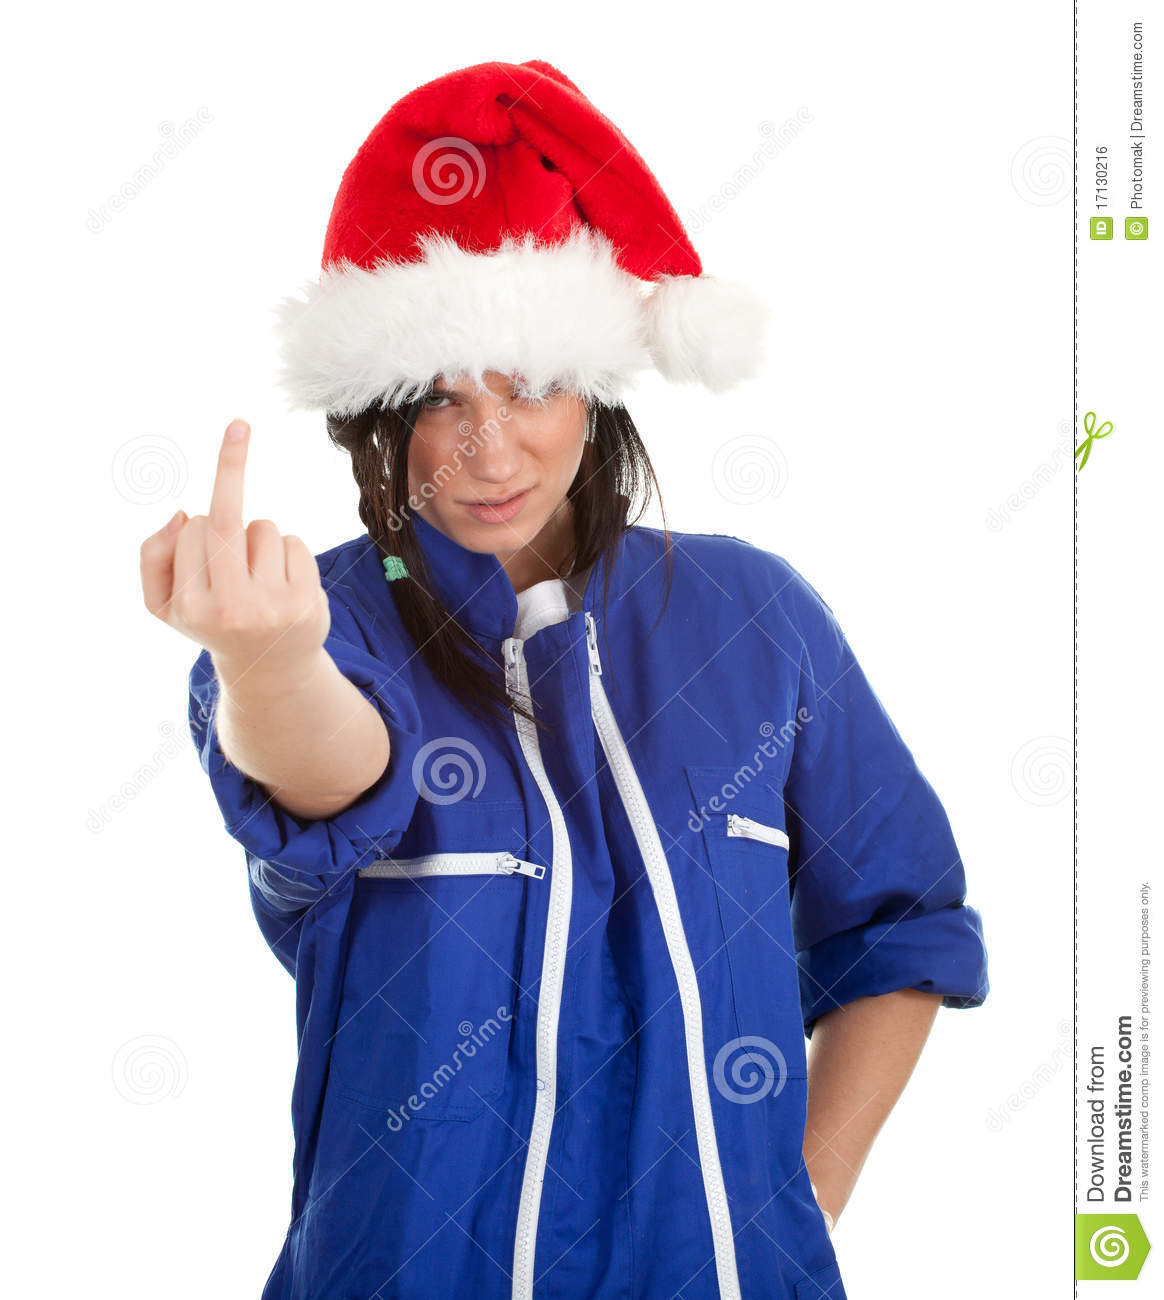 Angry woman in coveralls and santa hat royalty free stock image